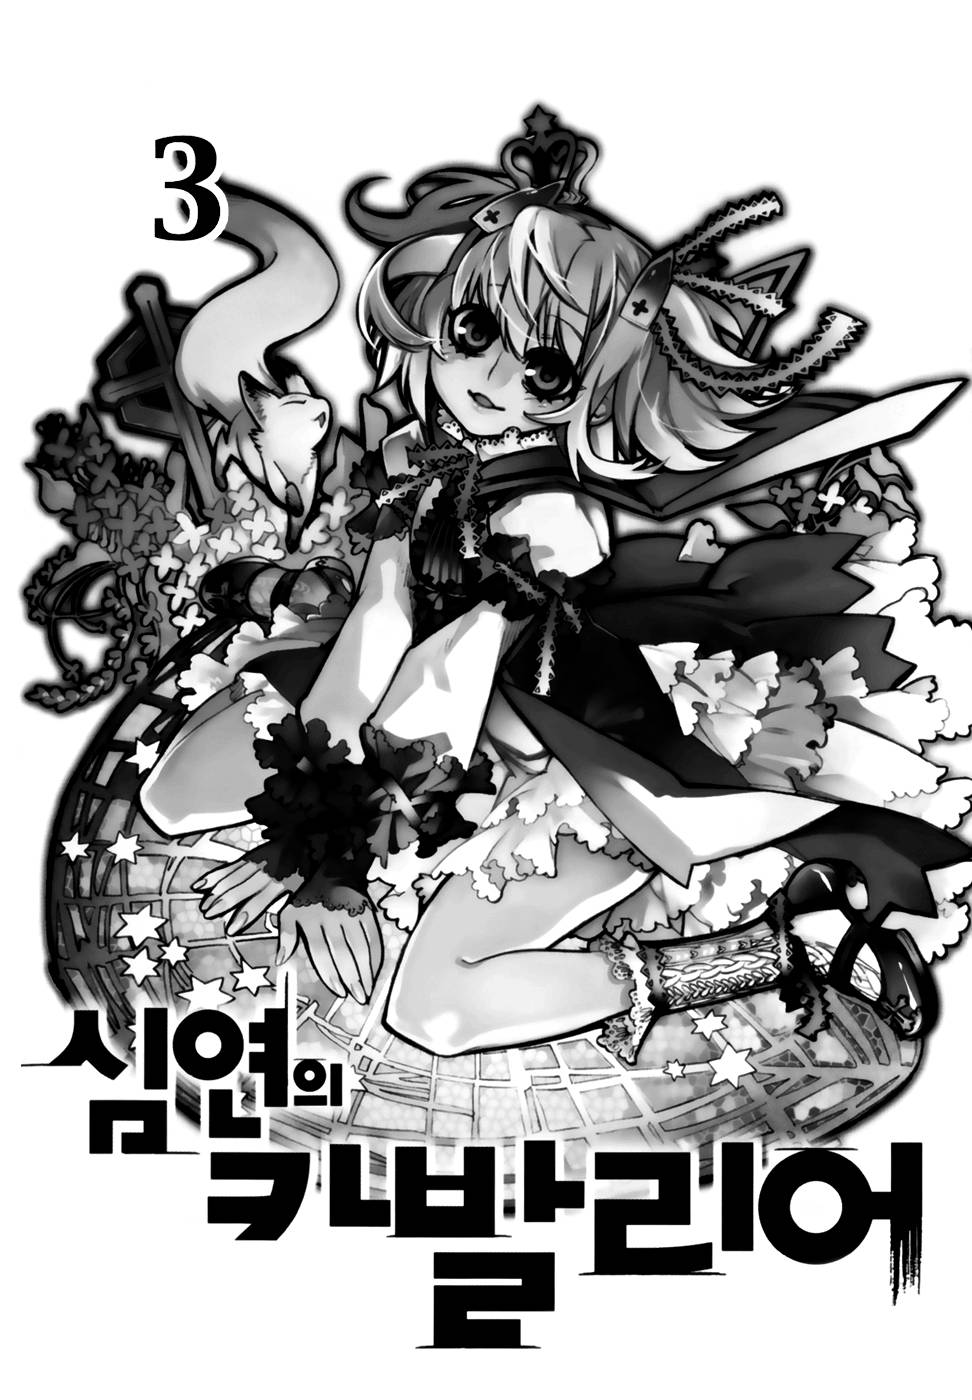 Read Cavalier Of The Abyss Chapter 14